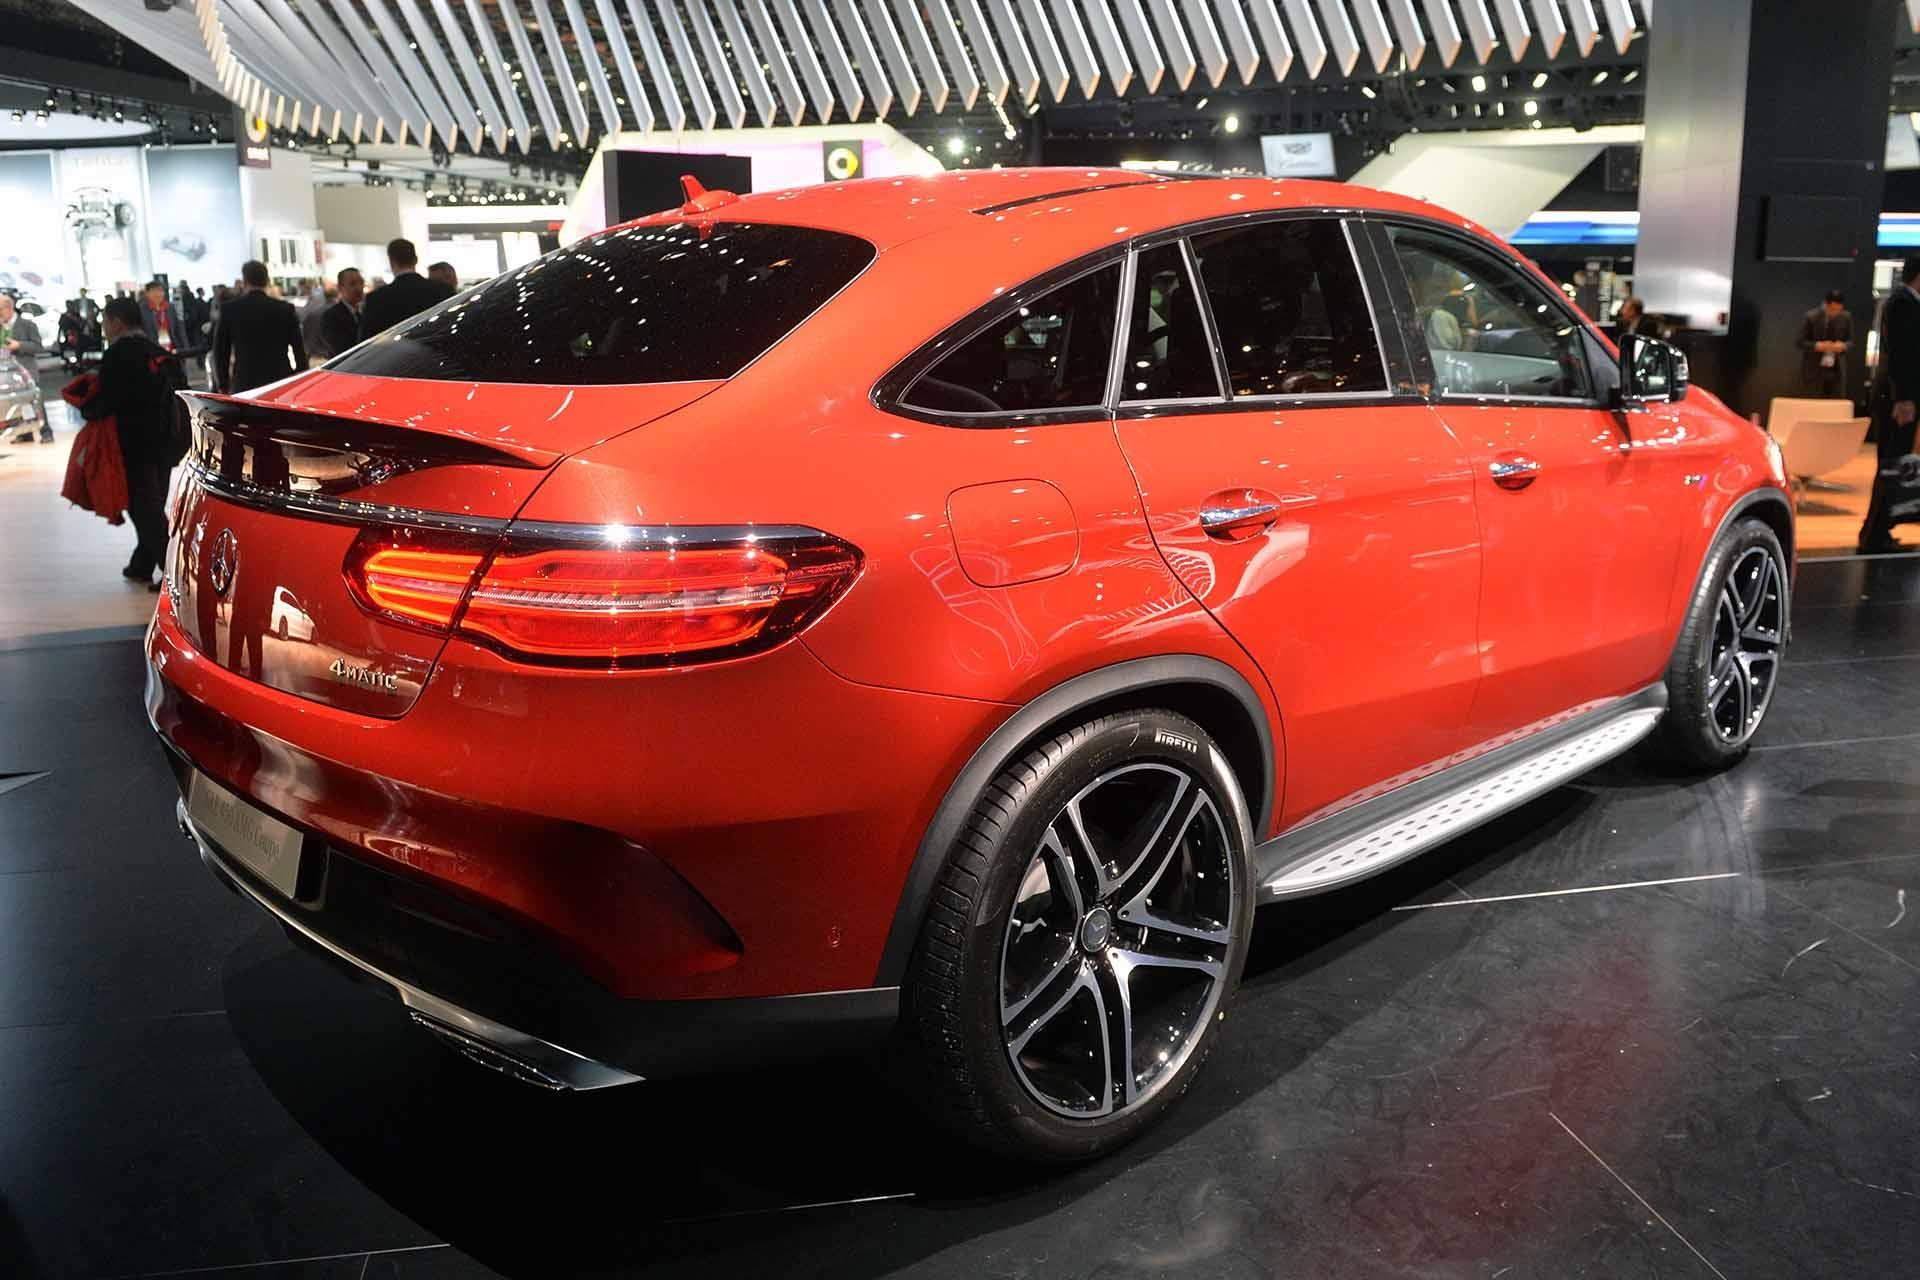 2016 Mercedes Benz GLE 450 AMG Sport Coupe